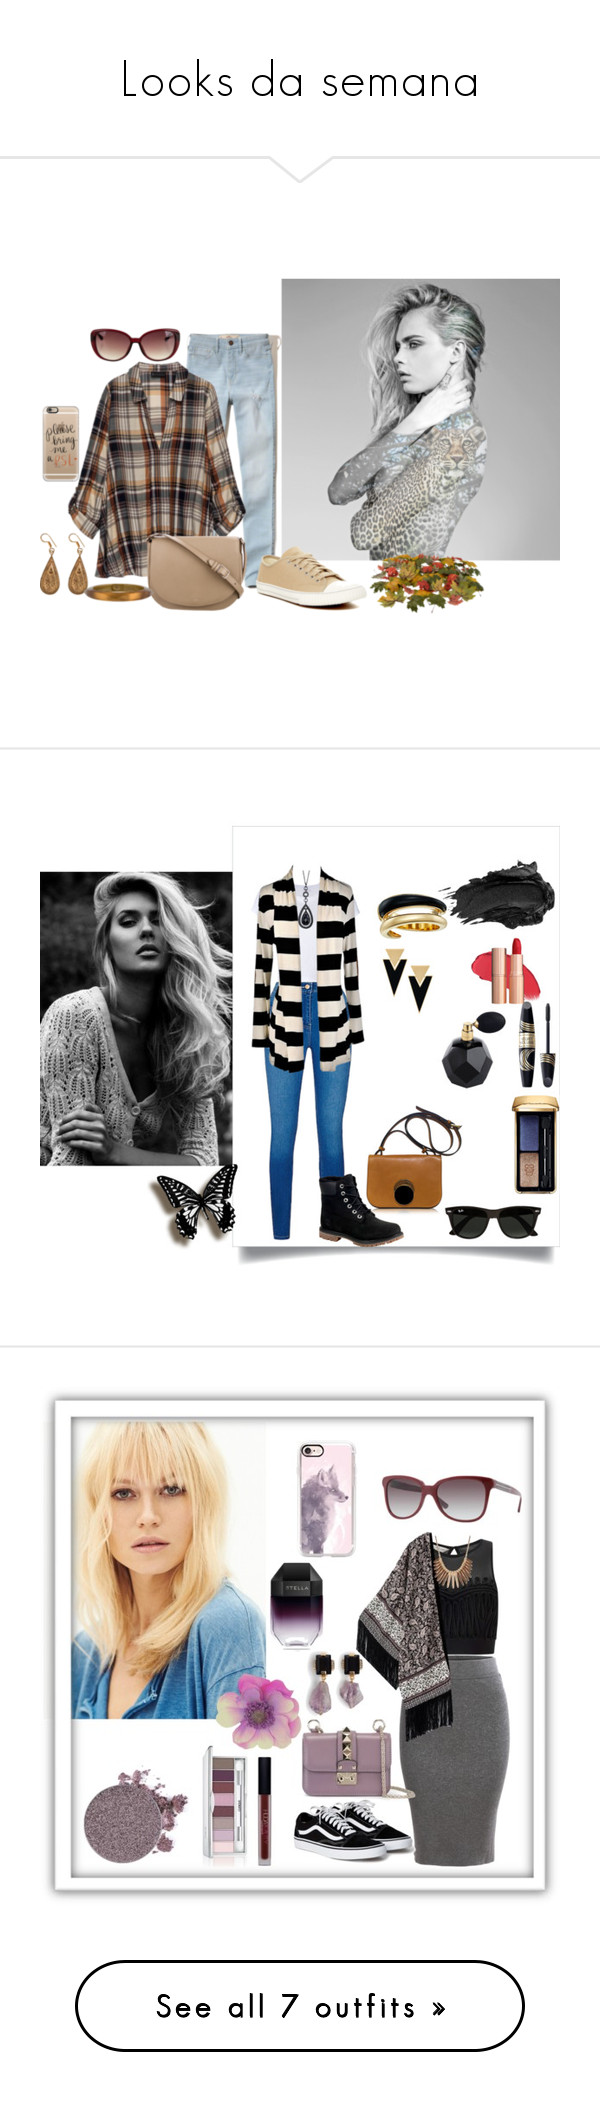 """Looks da semana"" by megeller on Polyvore featuring moda, Hollister Co., Bobeau, Tretorn, CÉLINE, Casetify, Urbiana, Alexis Bittar, RE/DONE e Timberland"